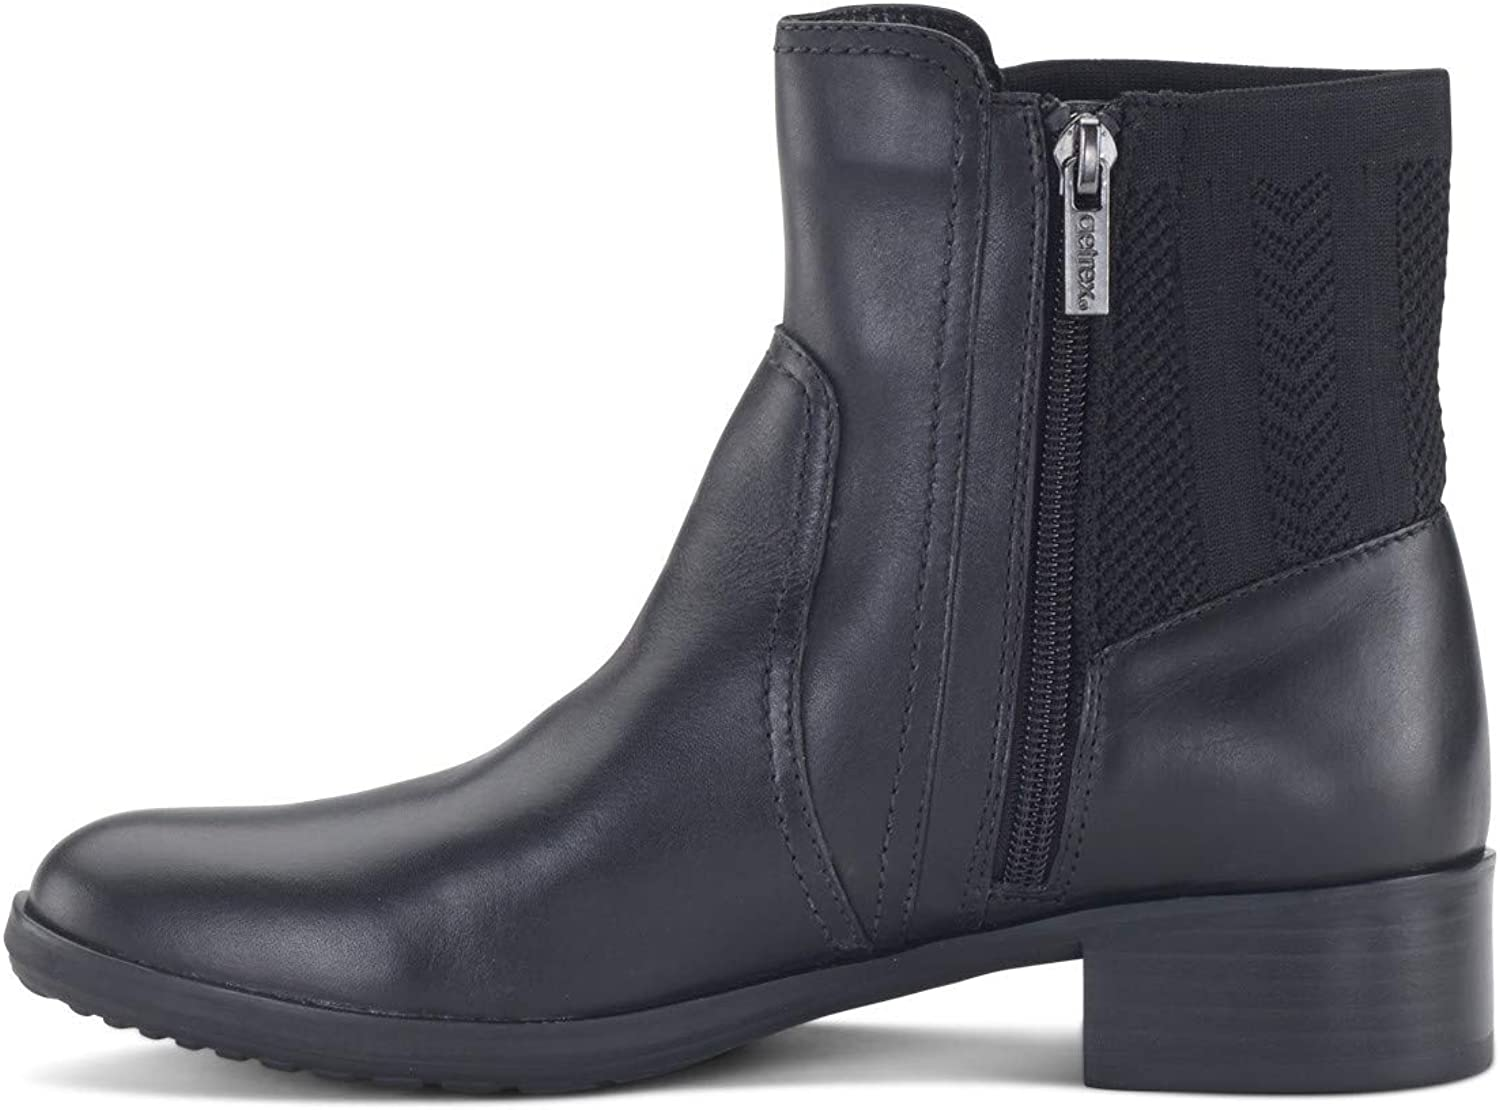 Aetrex Womens Kaitlyn Leather Round Toe Ankle Fashion Boots